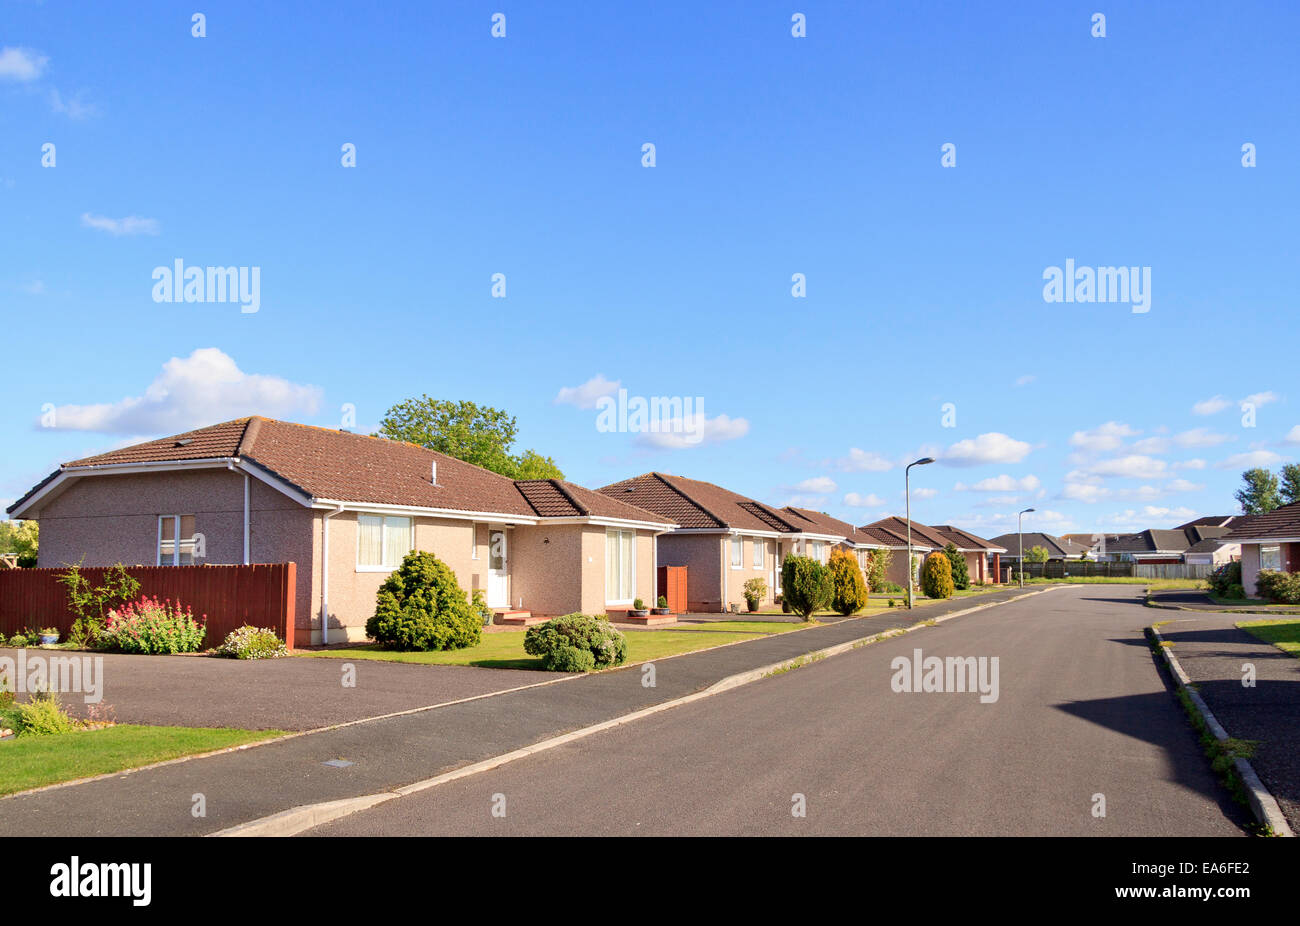 Pristine bungalows on a residential street in Dunkeswell, Devon, England - Stock Image